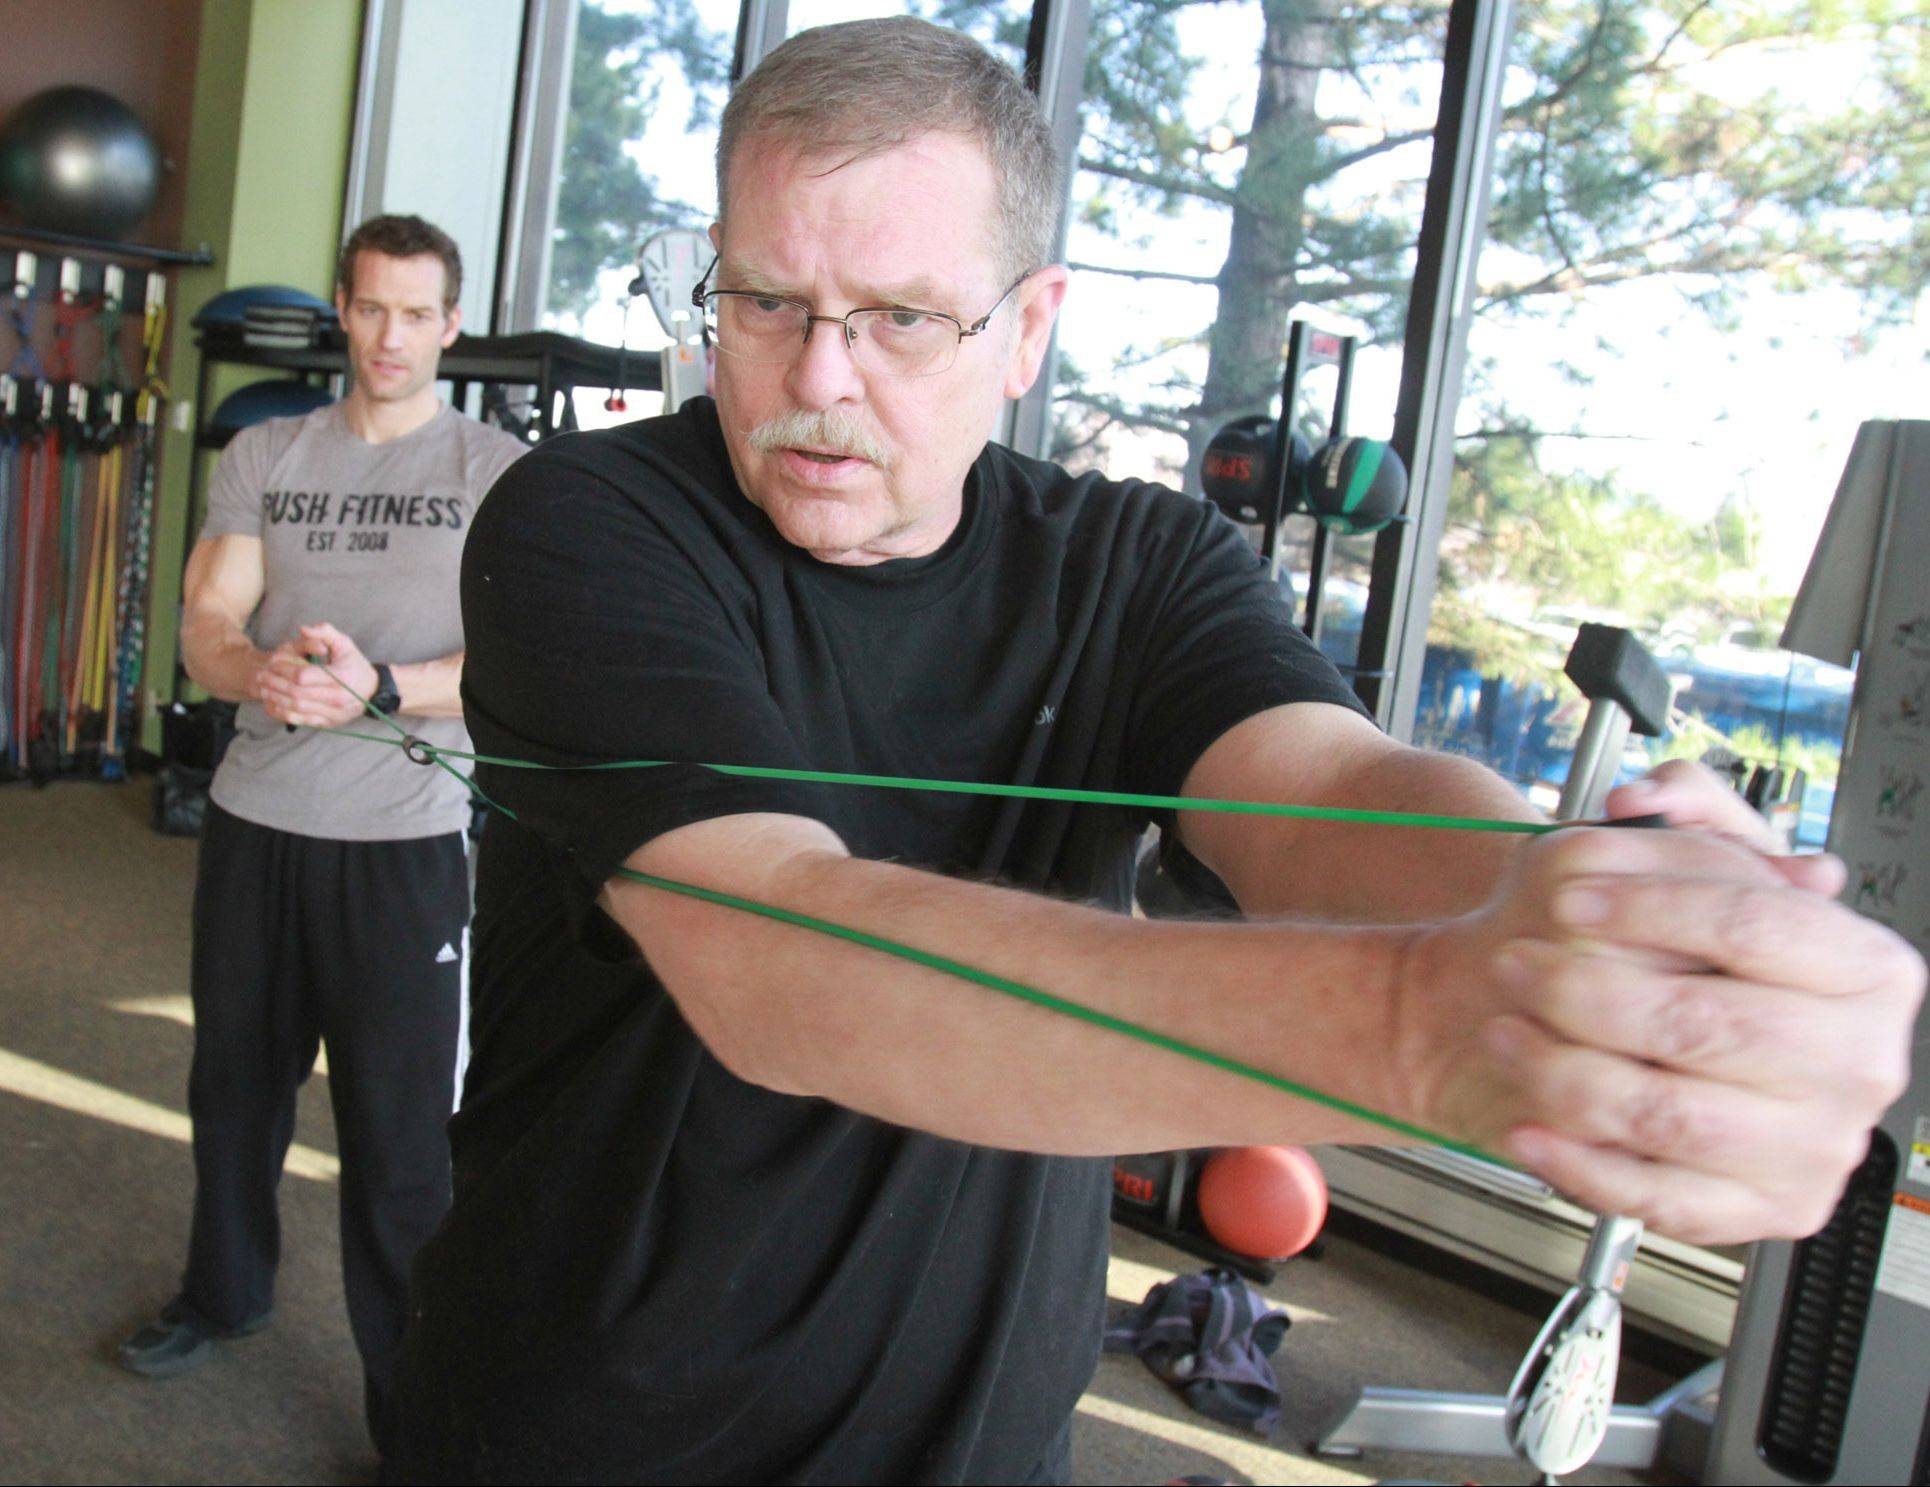 Joshua Steckler, trainer and co-owner of Push Fitness in Schaumburg, works out with Tom Hampson. After completing the competition in May, Hampson continues to train with Steckler.